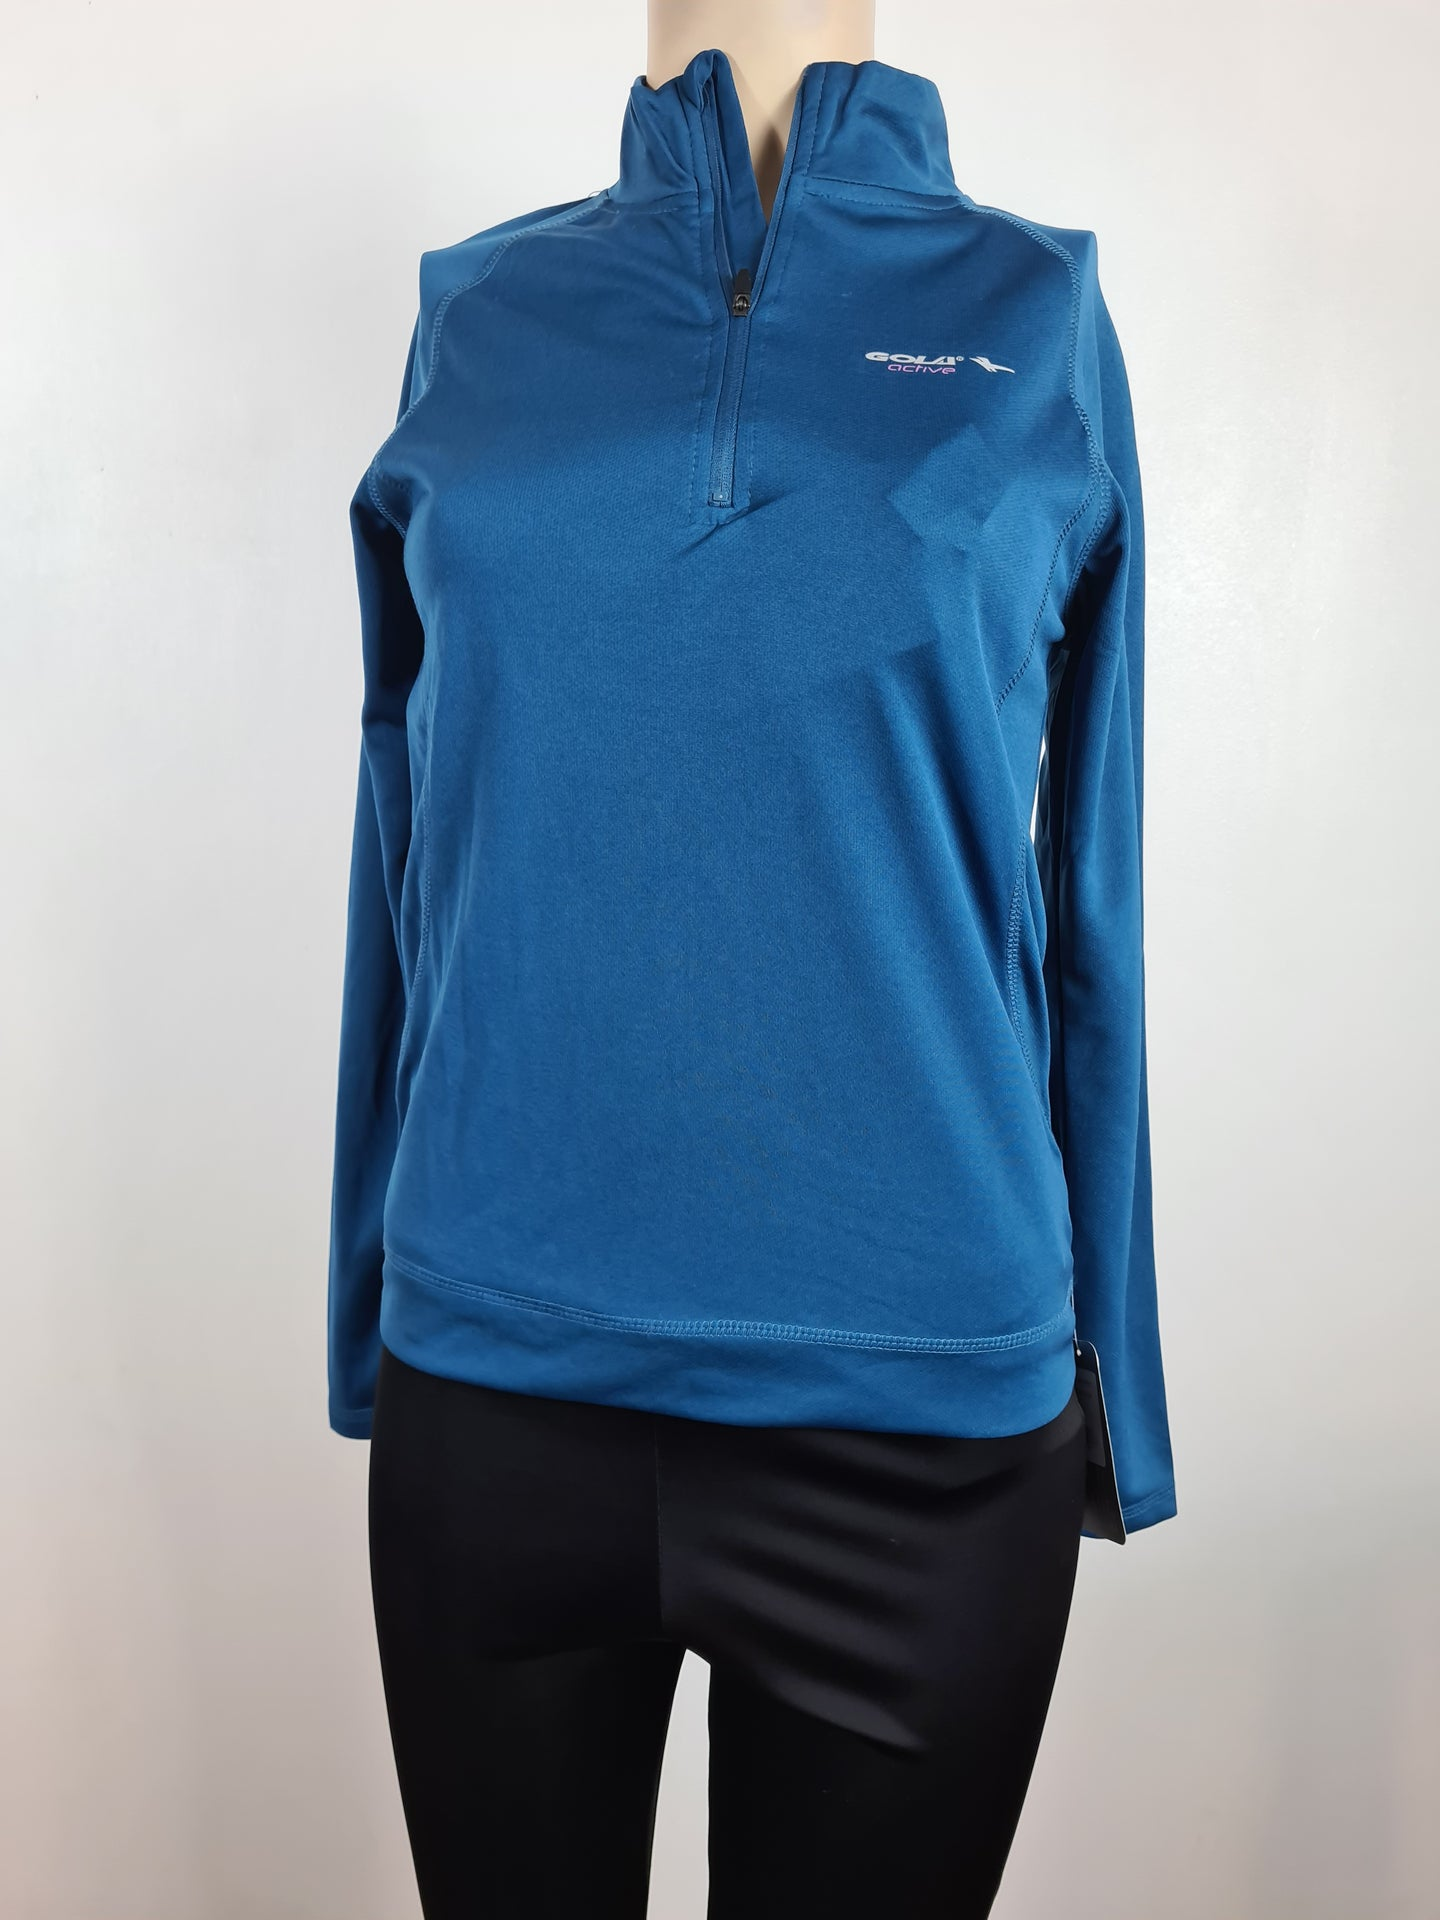 Sweat Gola active - taille 44